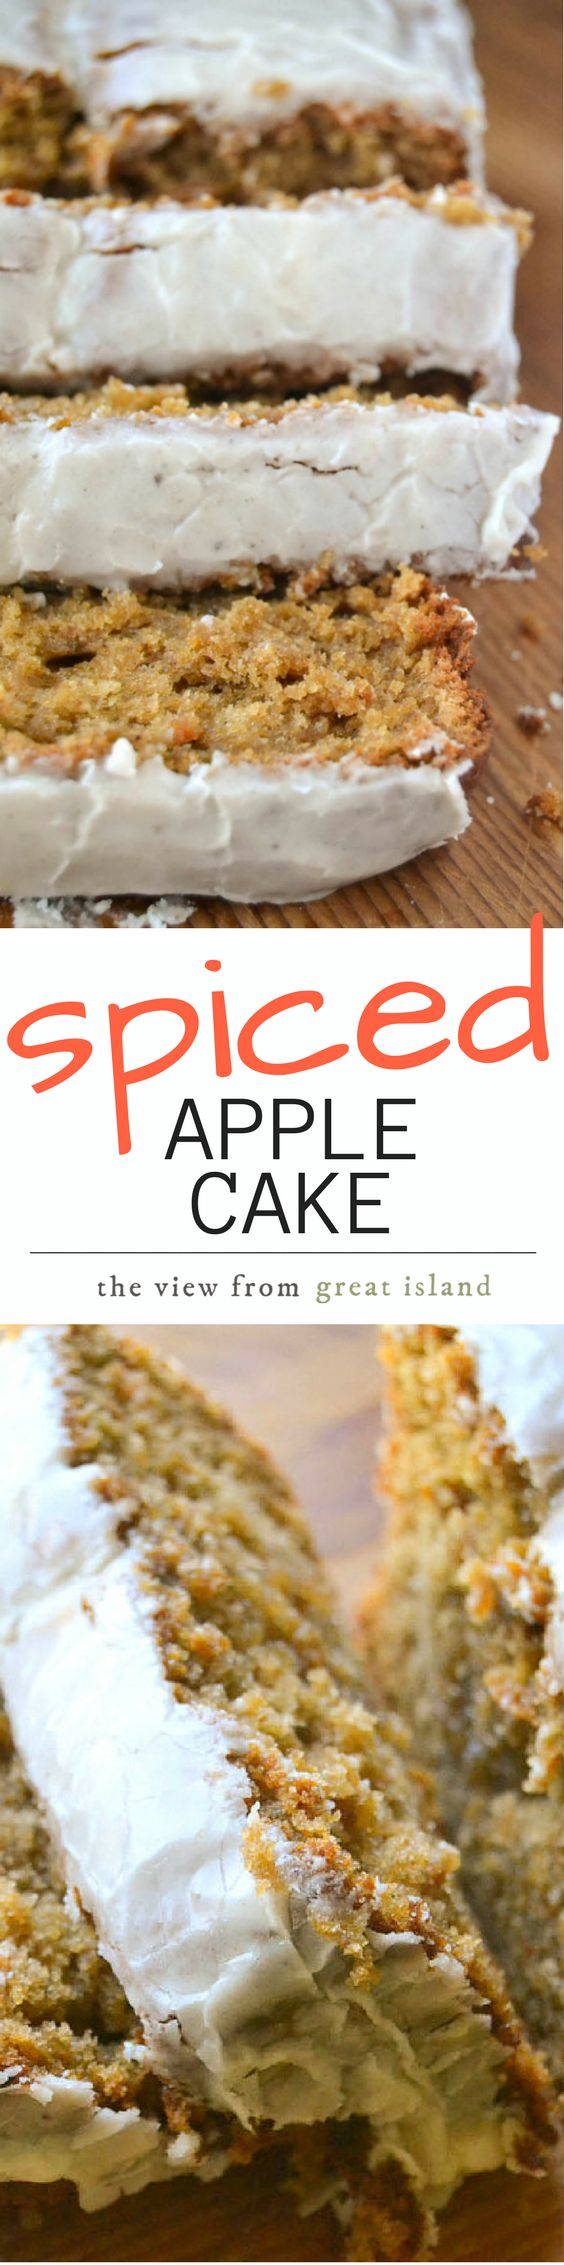 This Spiced Apple Cake has a moist crumb thanks to apple butter, and the perfect amount of spice ~ a nutmeg glaze tops it off! | coffee cake | pound cake | Fall | Breakfast | Dessert |